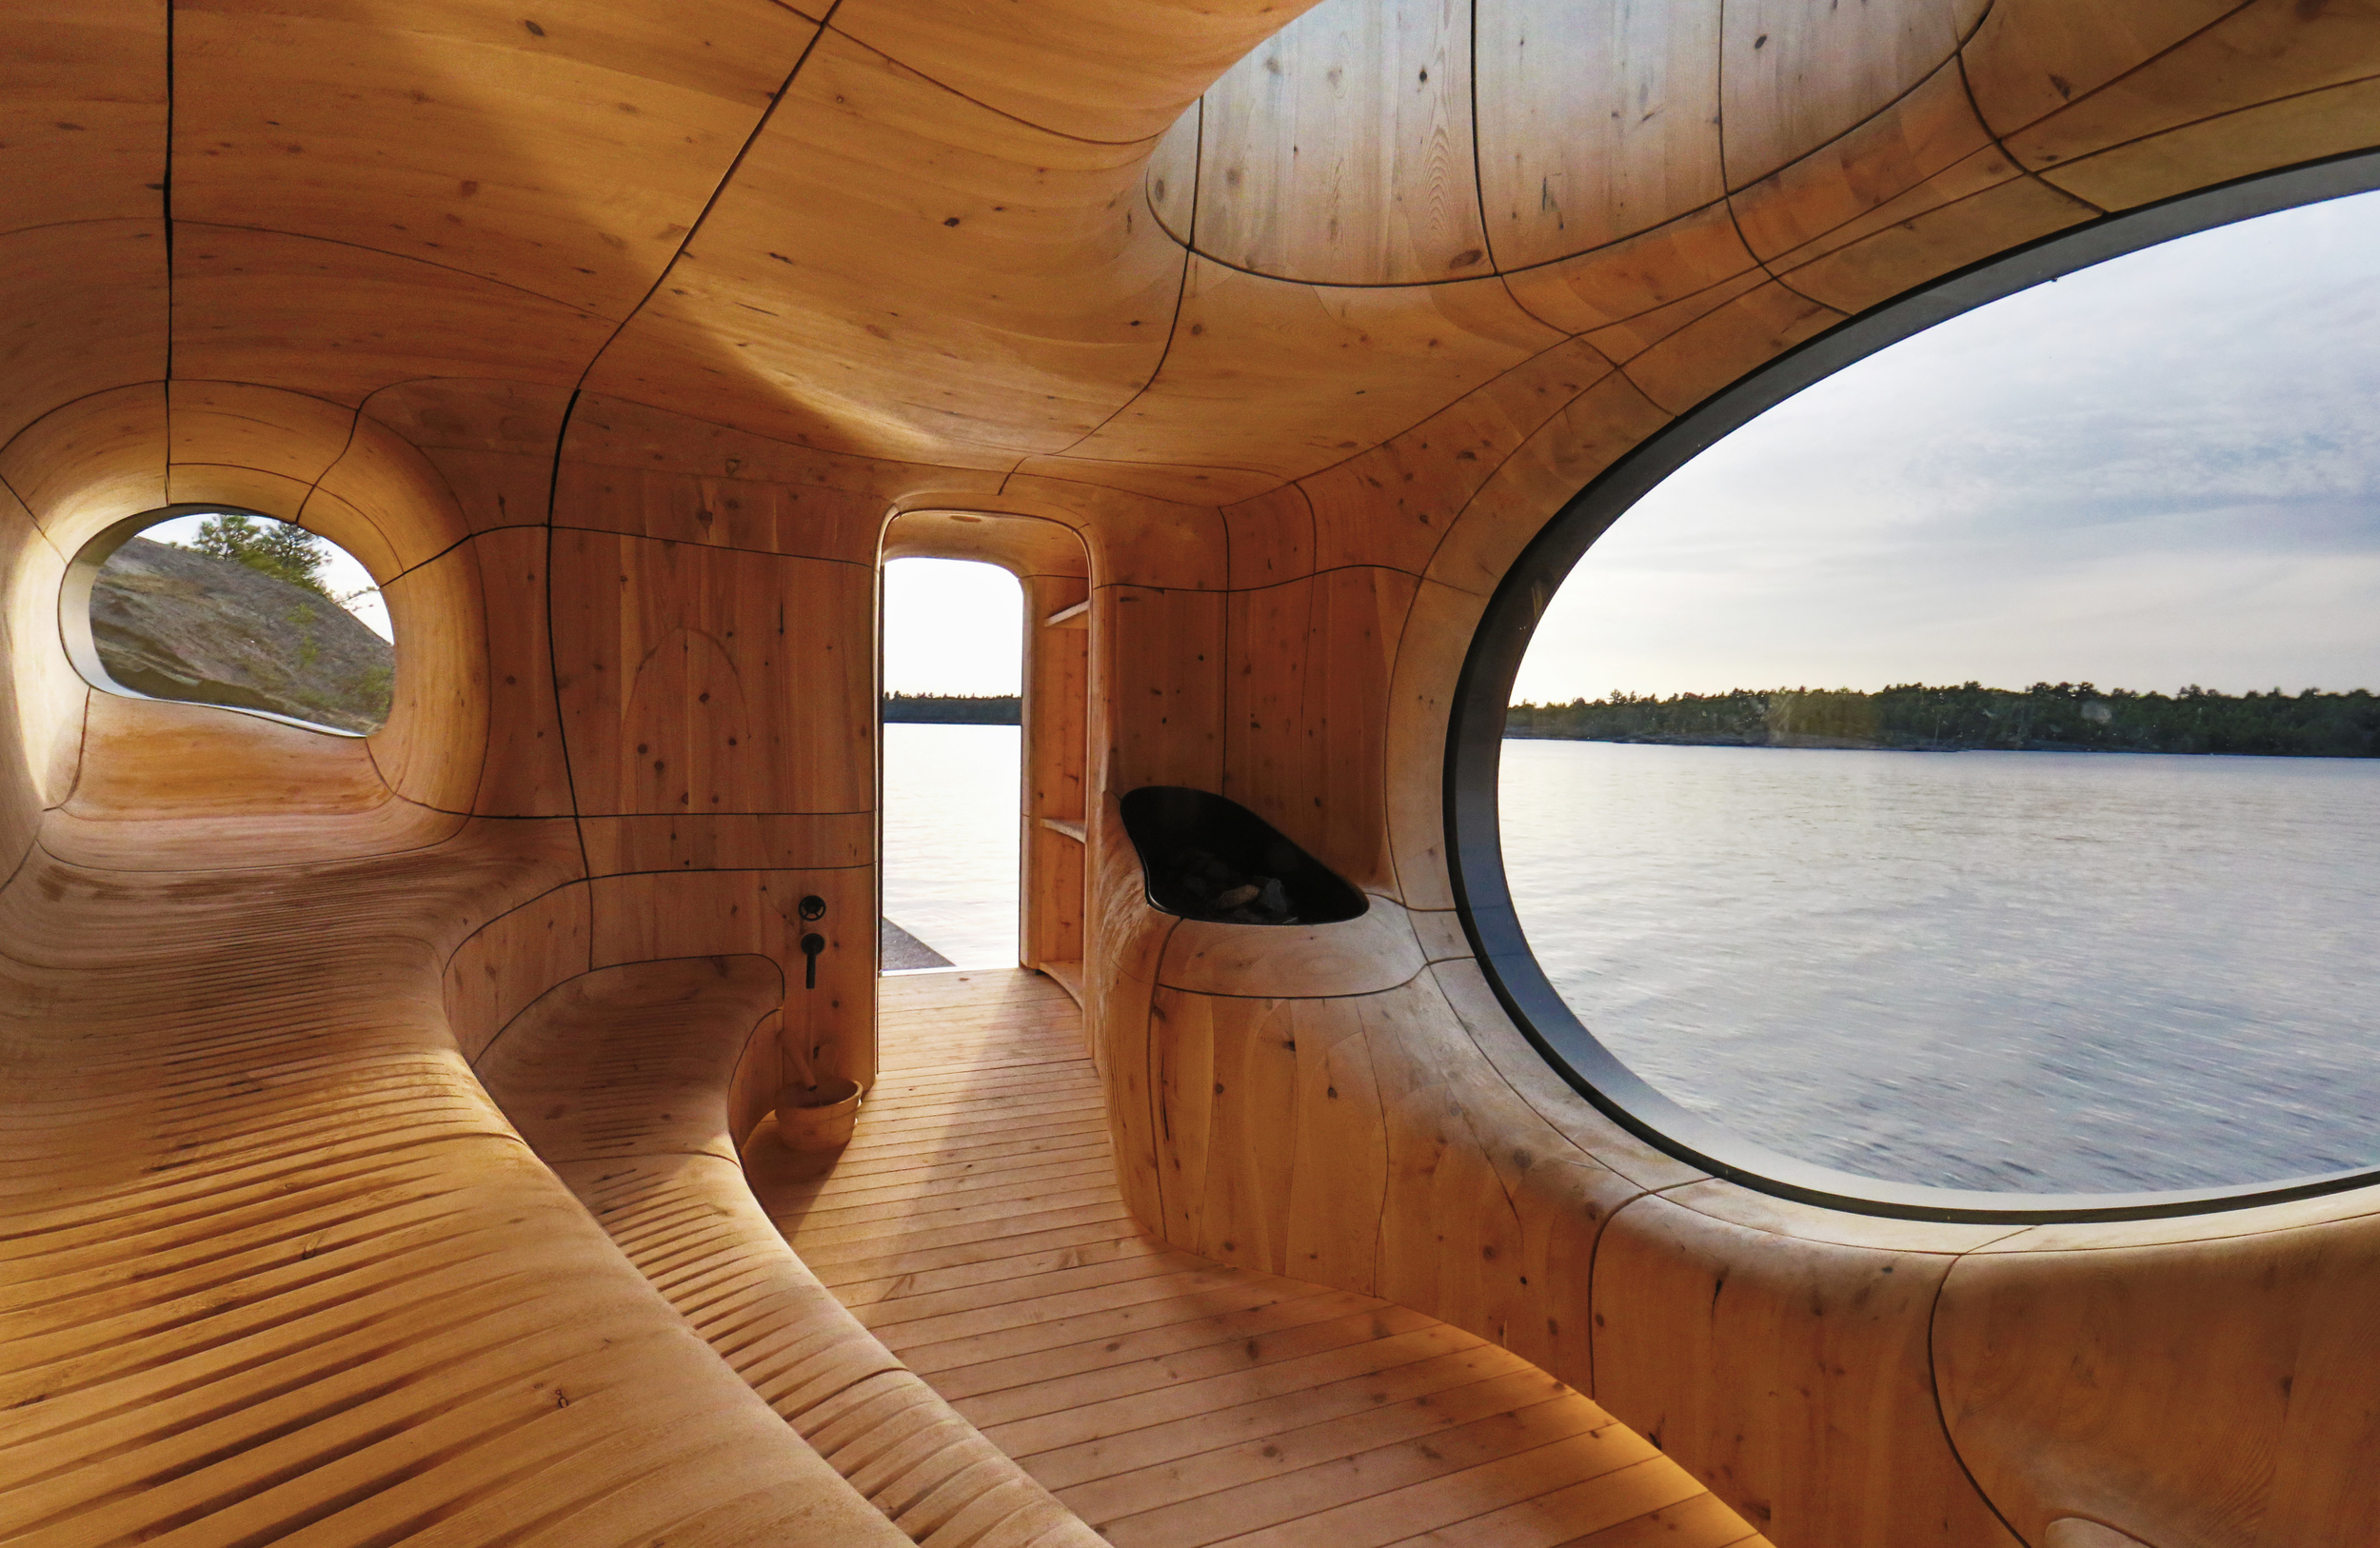 Gorgeous Canadian Grotto Sauna – Fubiz Media Design